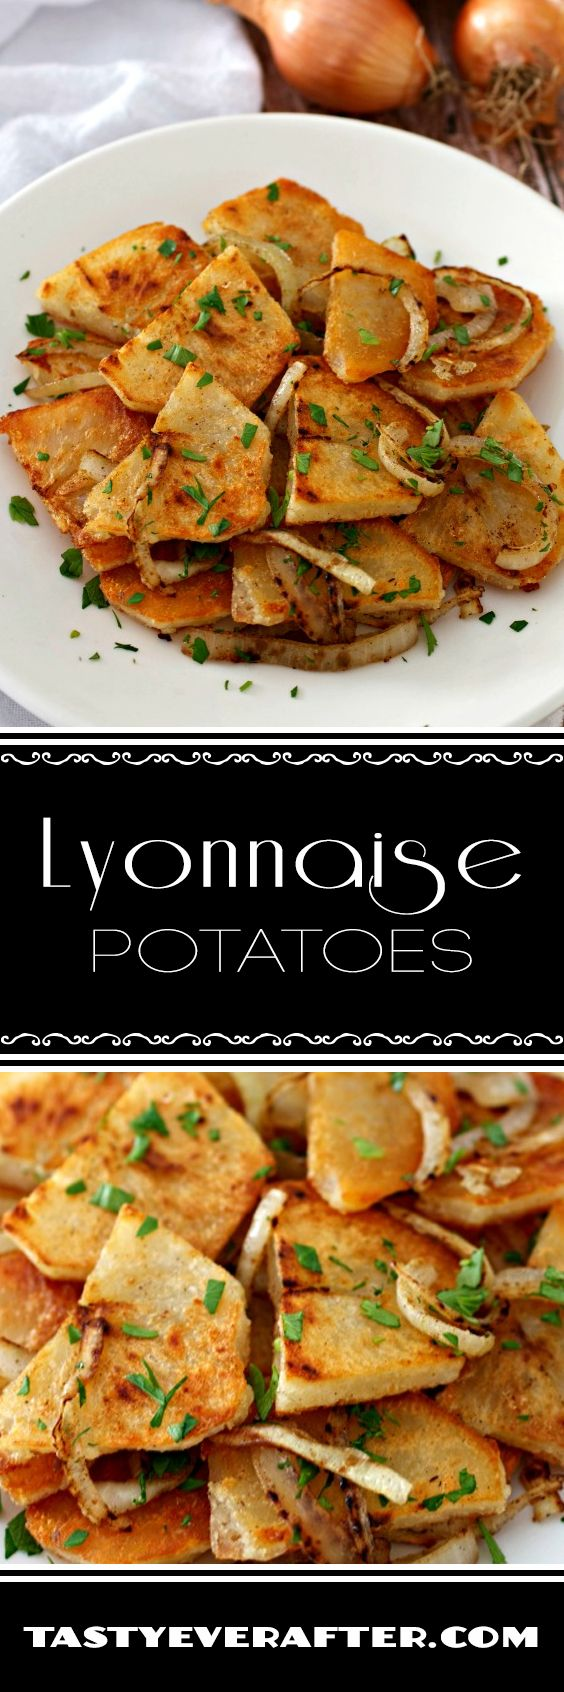 Classic and easy recipe for the French side dish of crispy potatoes and onions.  Made with organic potatoes from @BJsWholesale